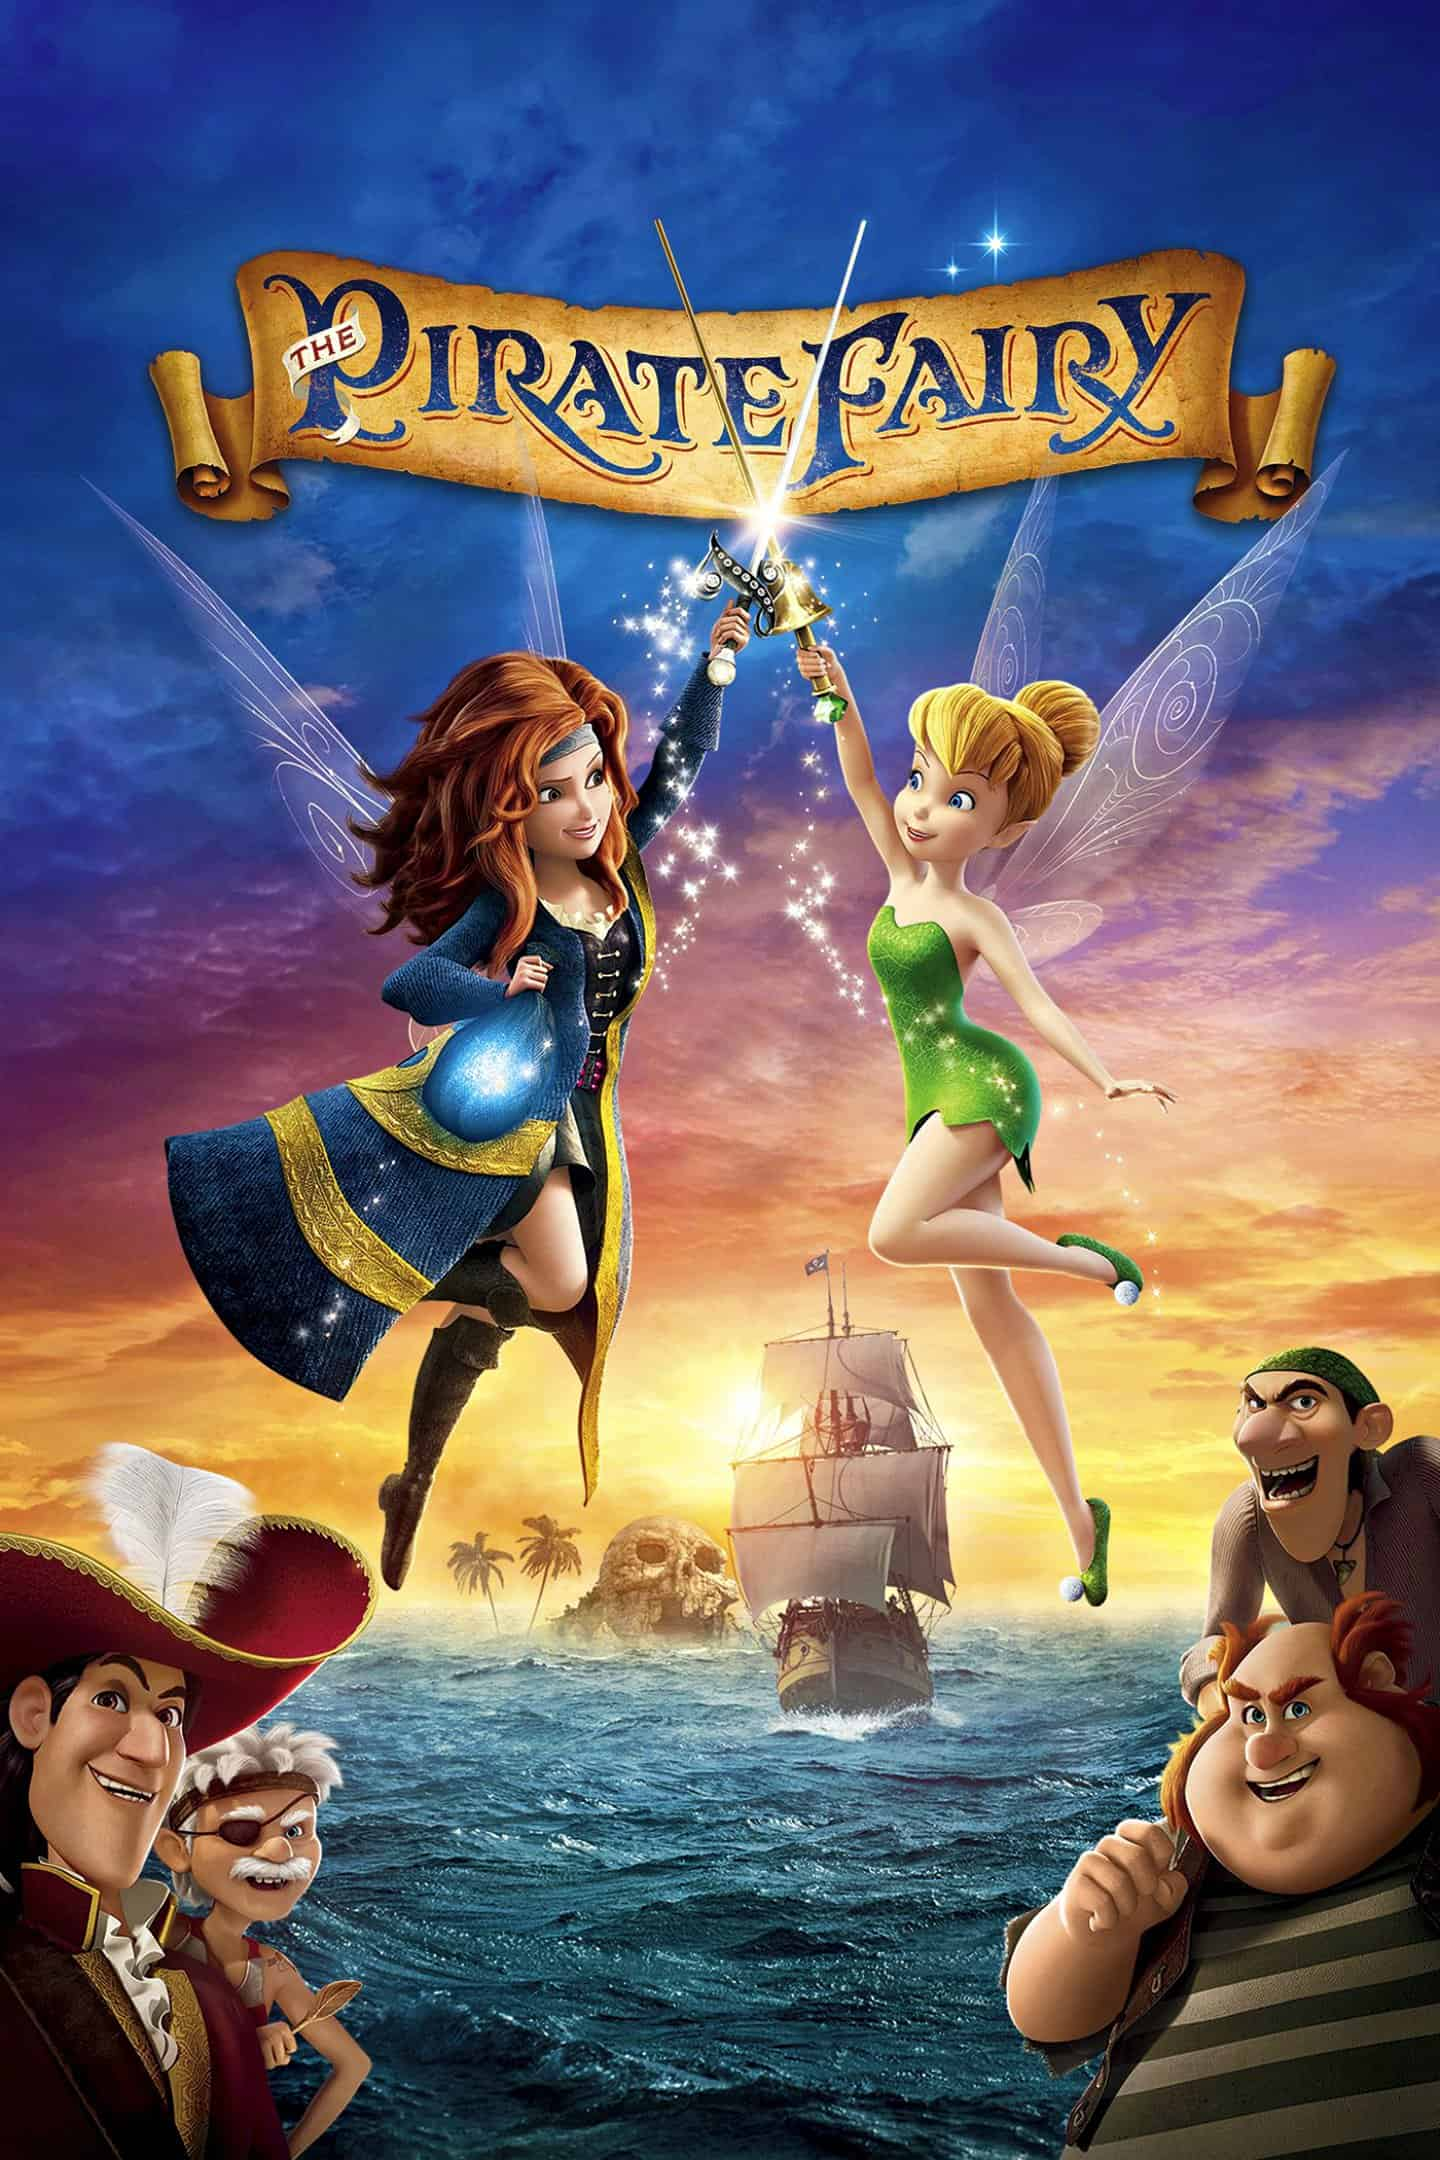 Tinker Bell and the Pirate Fairy, 2014